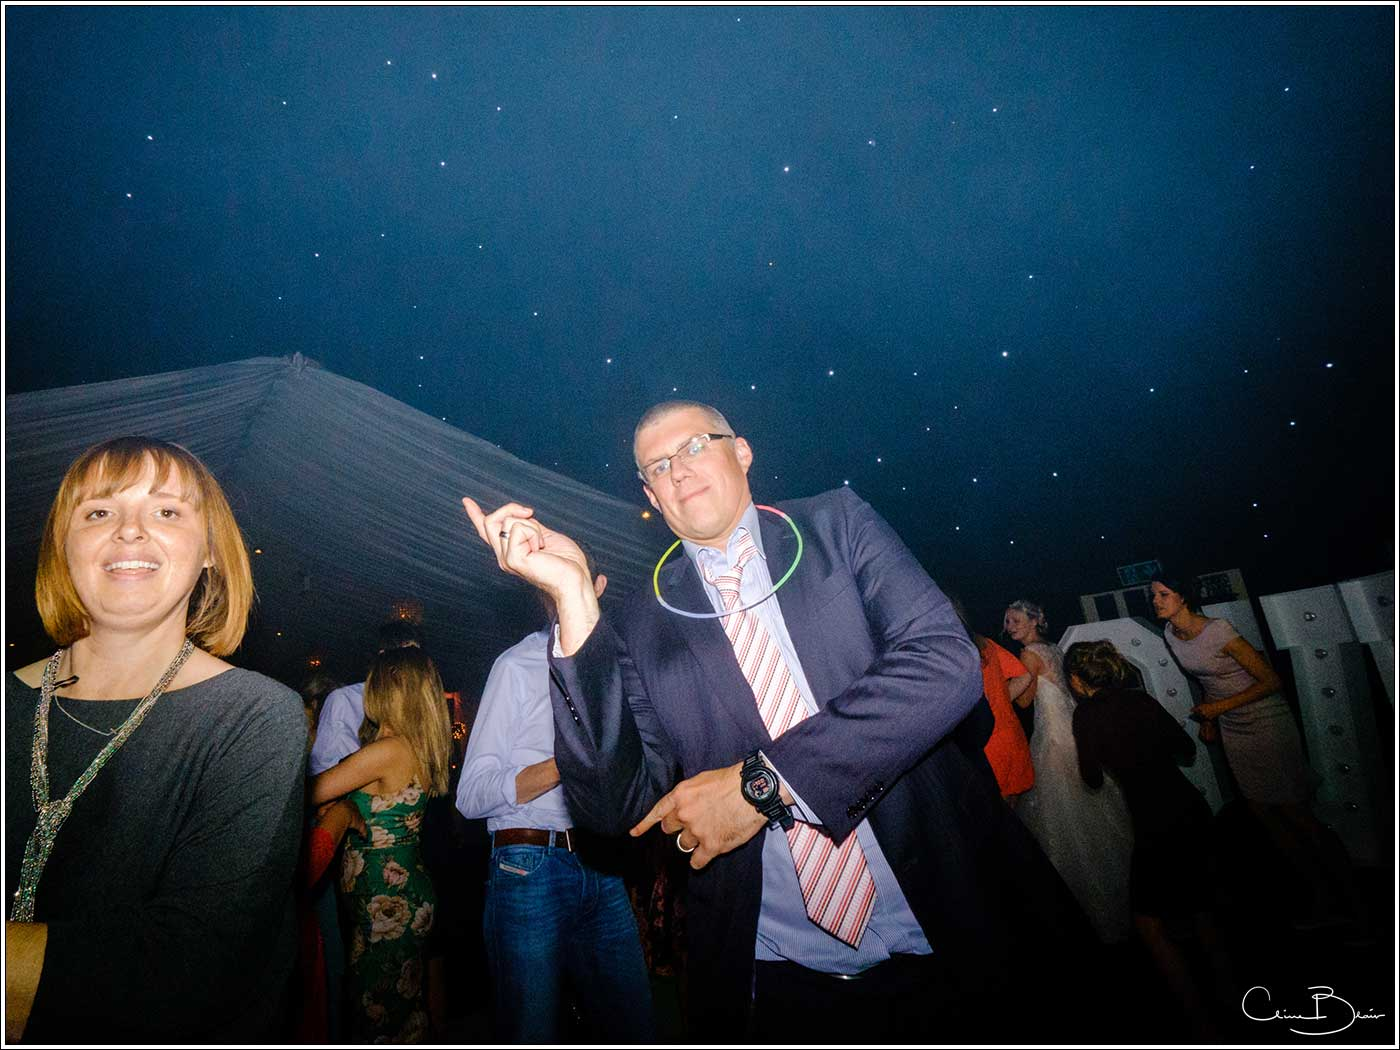 Coombe Abbey wedding photography showing happy man on the dance floor